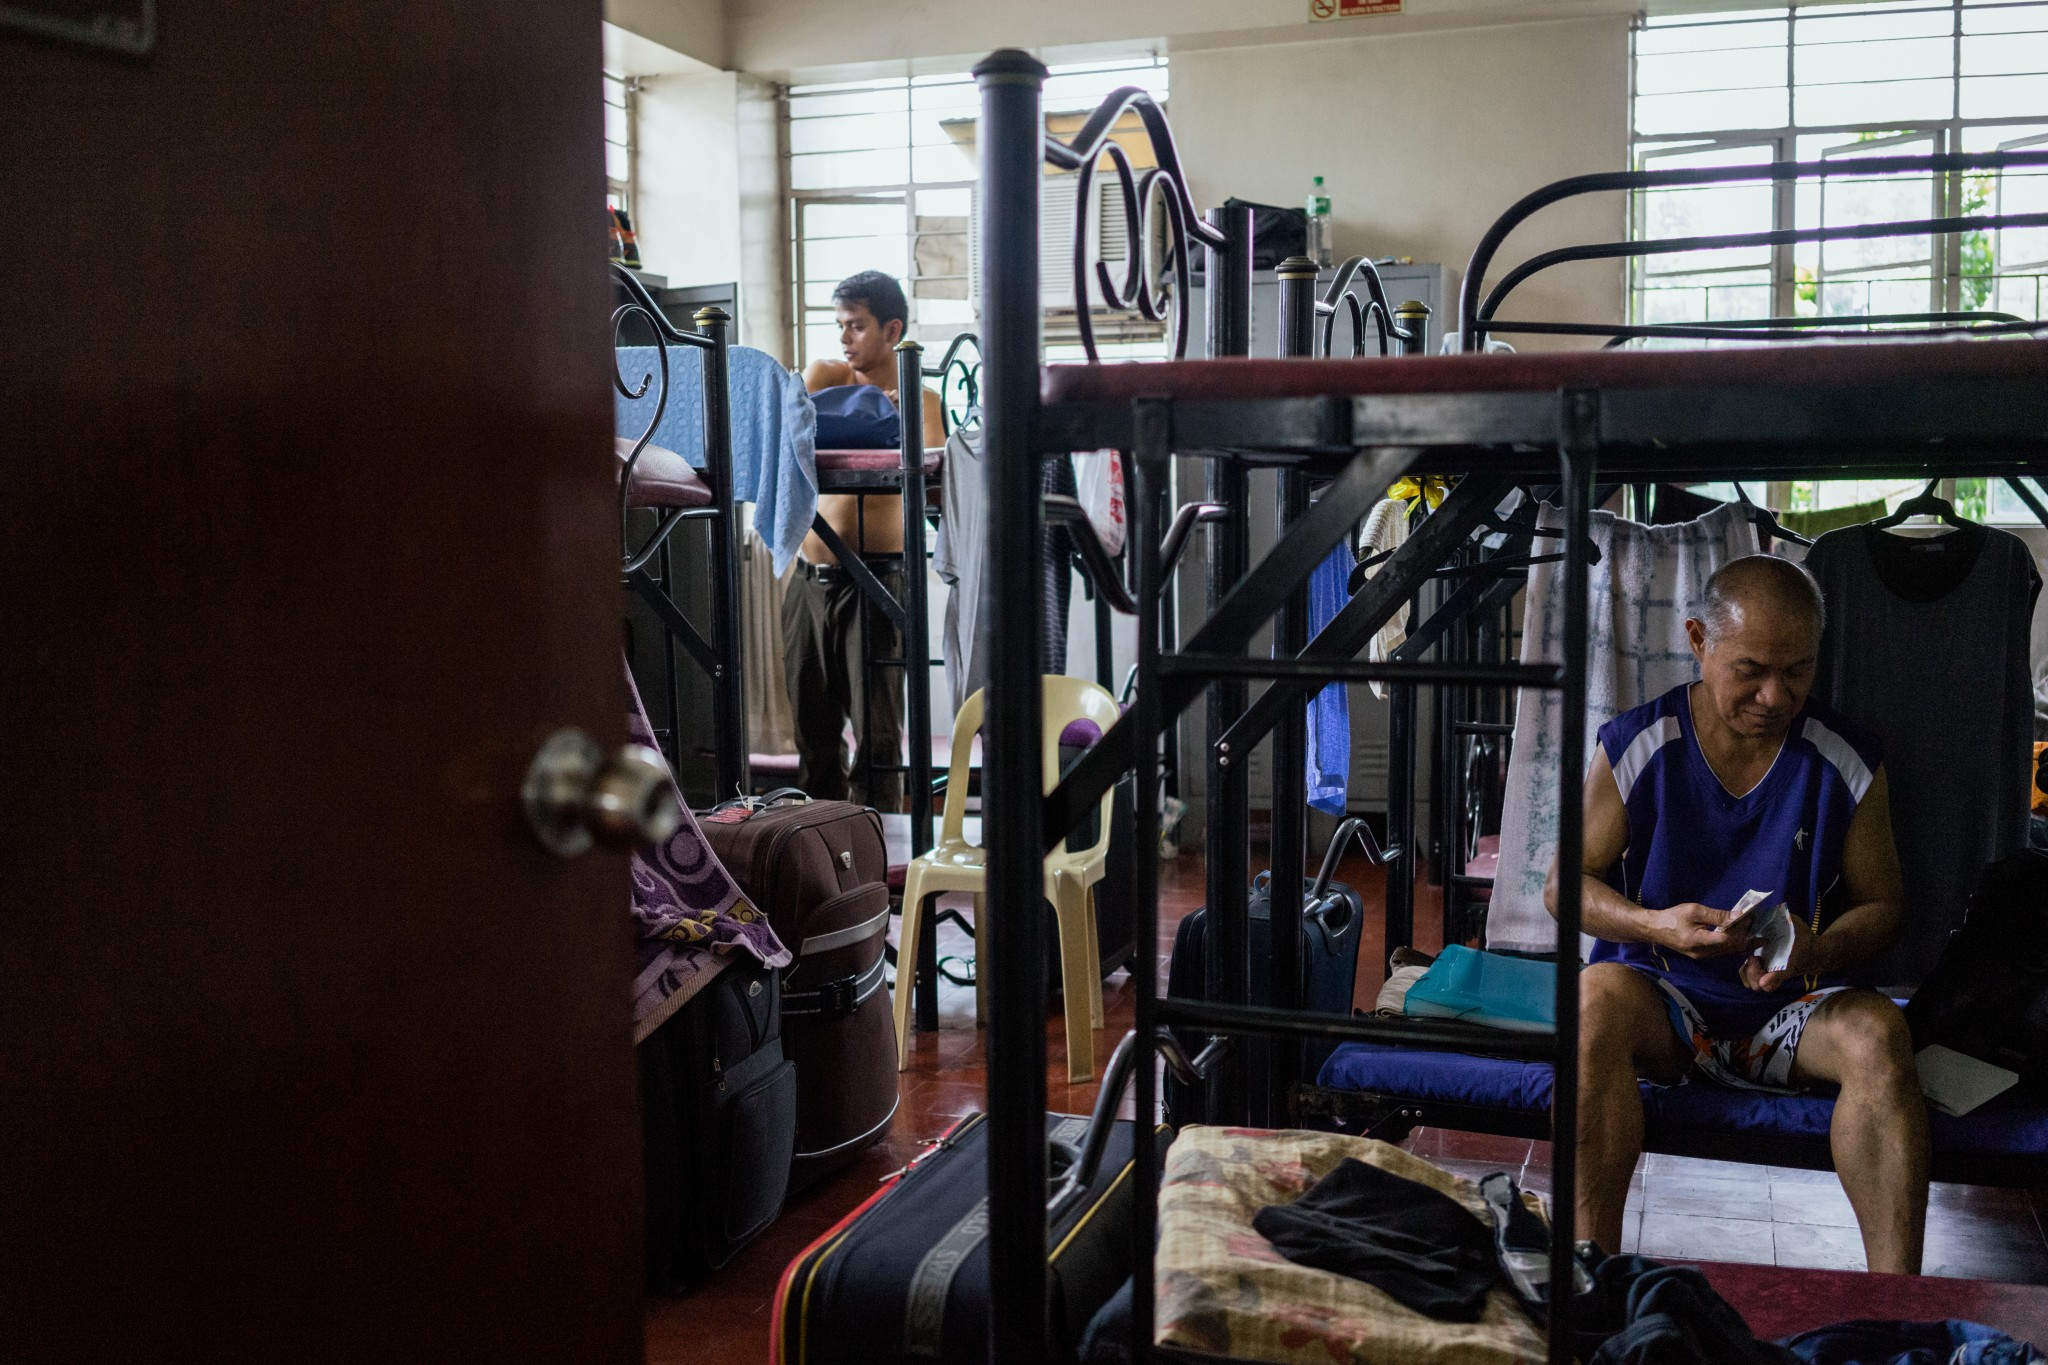 Filipino seafarers are seen in their room in the Apostleship of the Sea dormitory, a place where seafarers can stay for a low price while waiting to be employed in a ship. The Apostleship of the Sea is a Catholic organization that supports and provides services for vulnerable seafarers worldwide. (Photo: Hannah Reyes Morales)